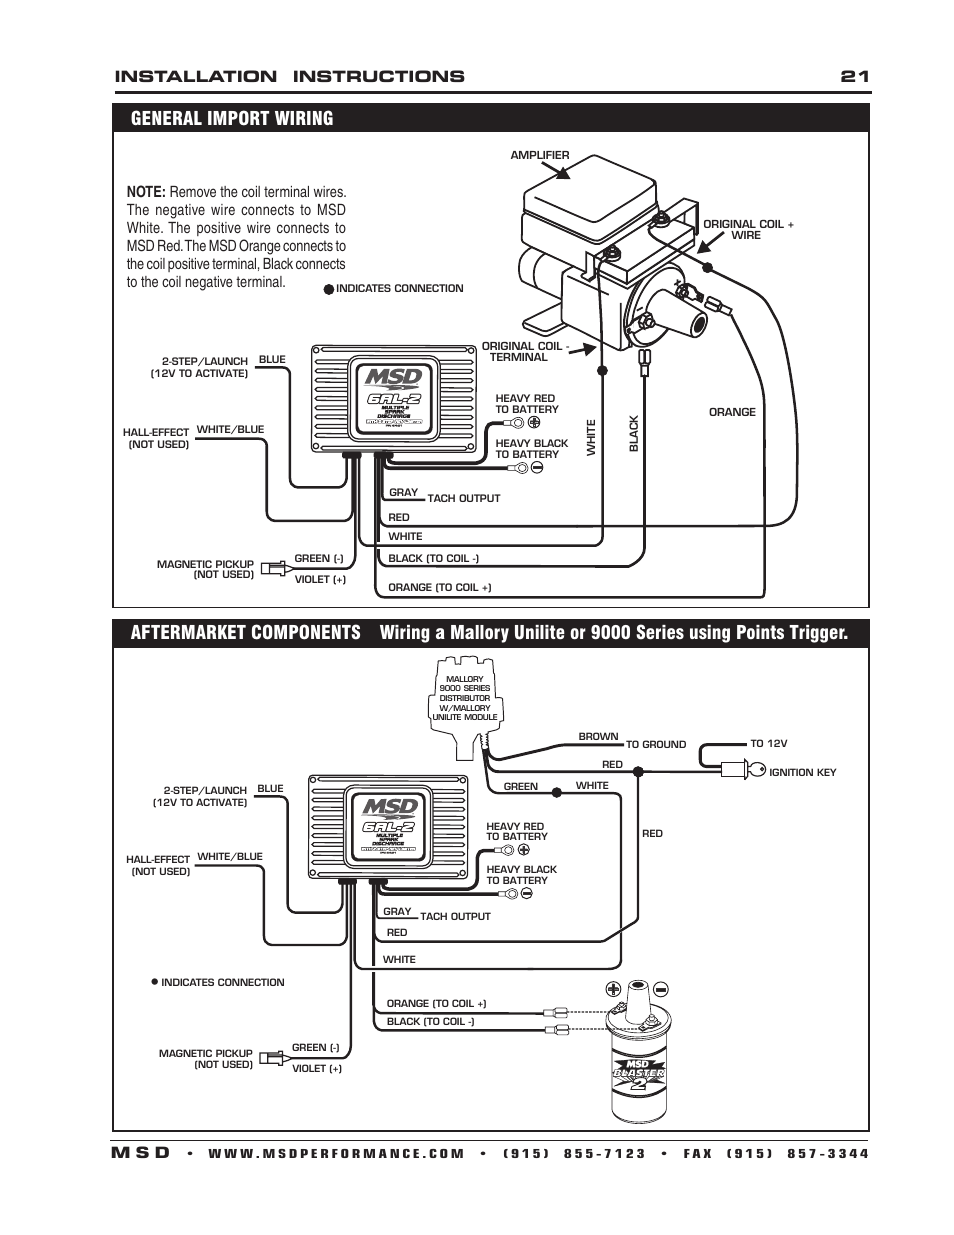 msd 6421 6al 2 ignition control installation page21?resize\\\\\\\=665%2C861 unilite ignition wiring ignition coil wiring \u2022 wiring diagram  at edmiracle.co